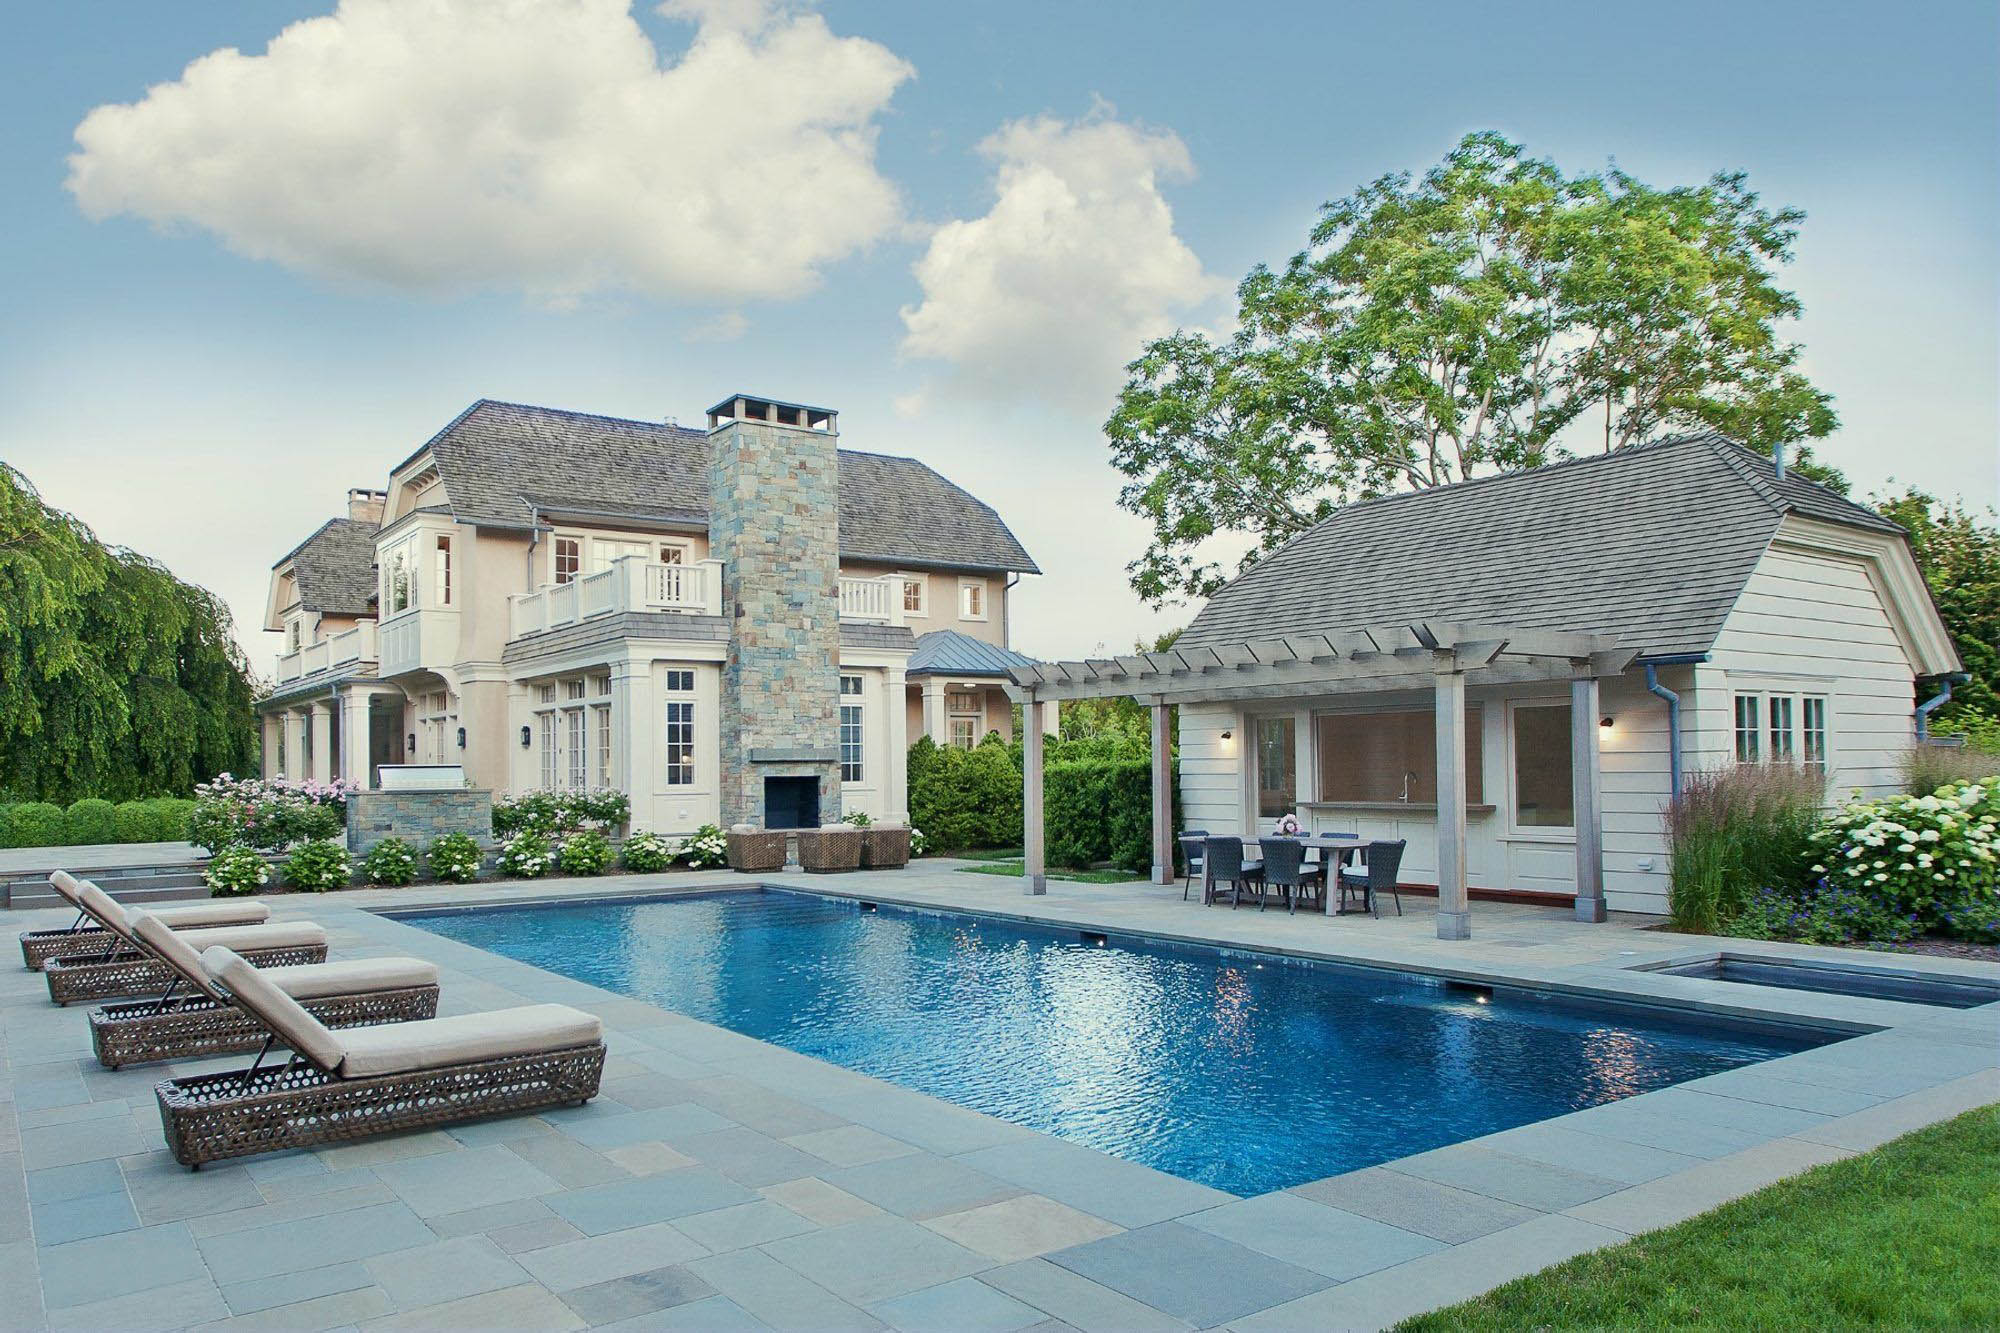 Blue stone pool patio with lounge woven furniture and seating areas. Pool house with arbor.